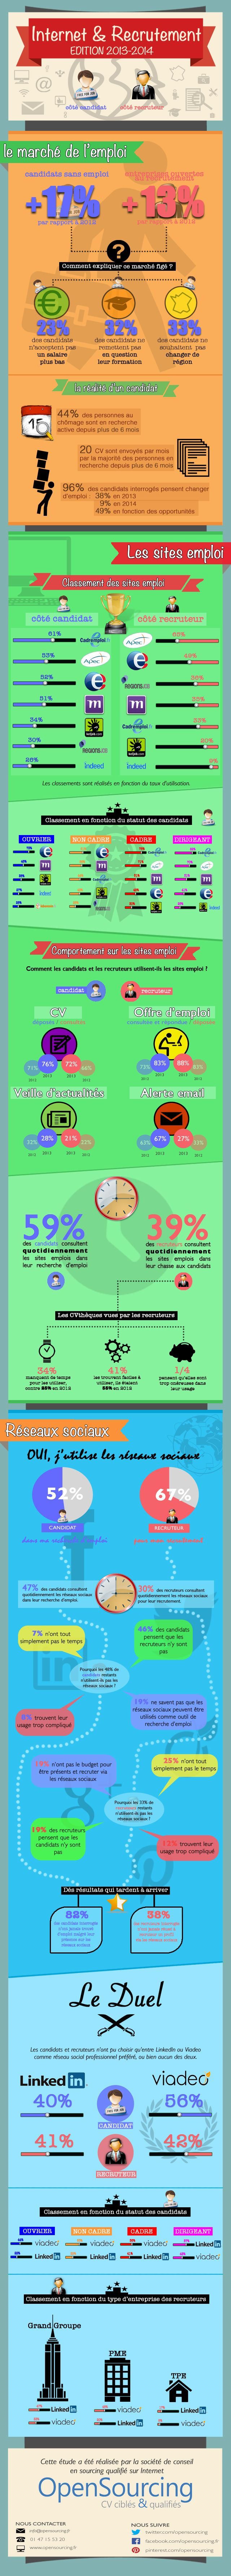 Internet & Recrutement 2014 #Infographie (by  Opensourcing)